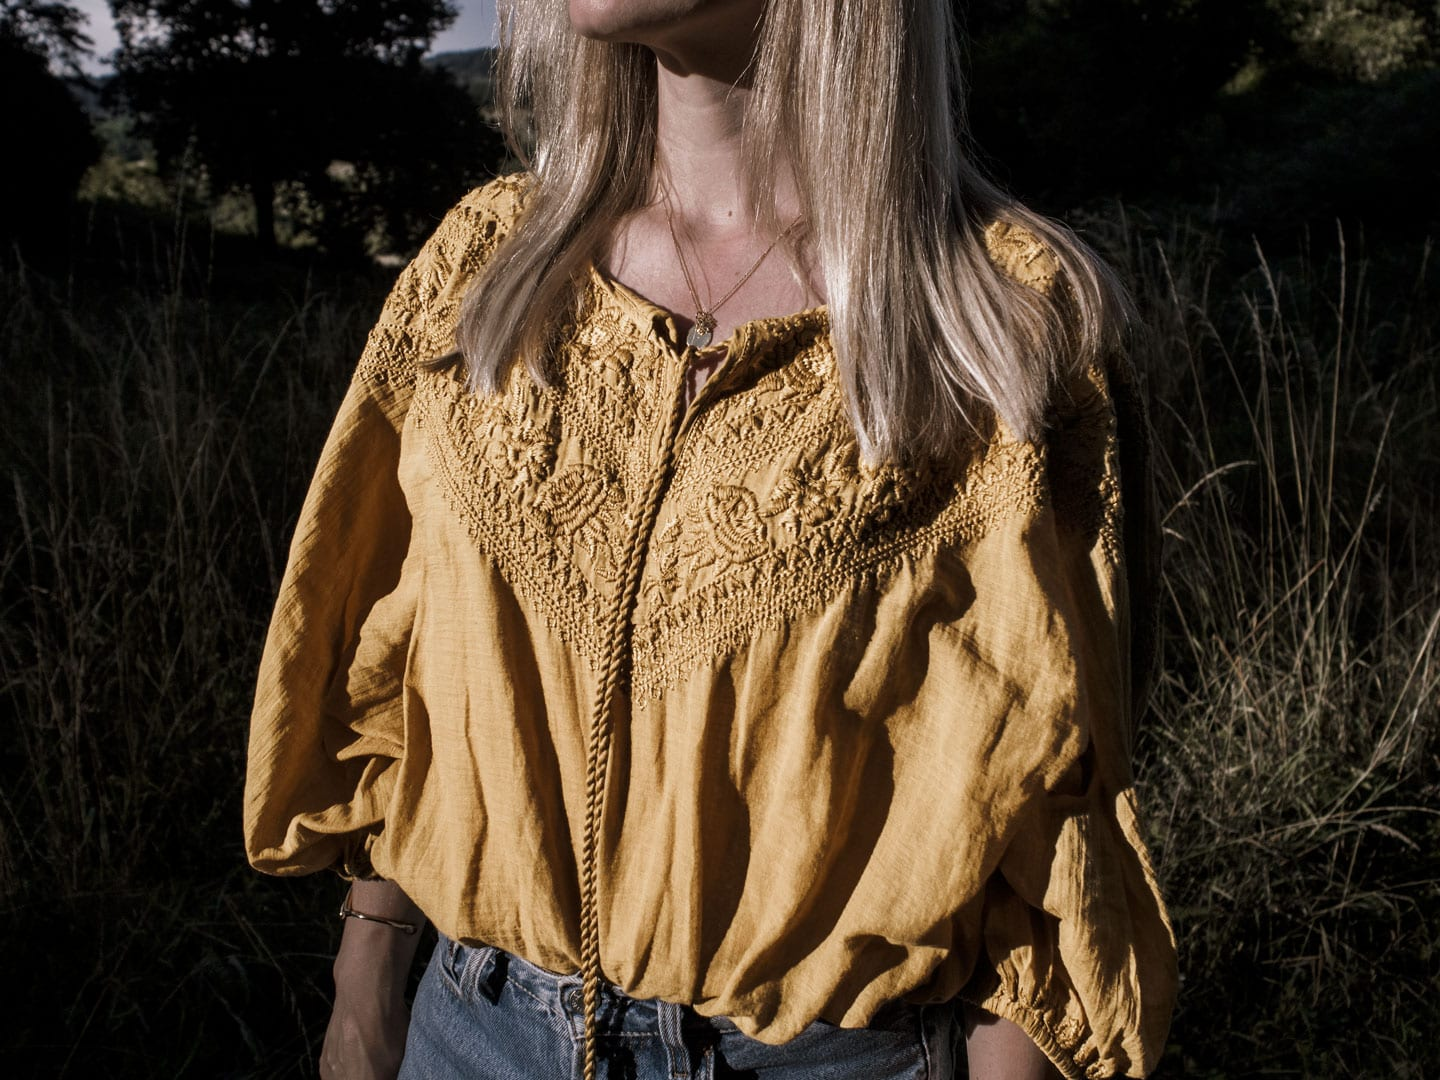 Photo of woman wearing yellow boho peasant top in French field